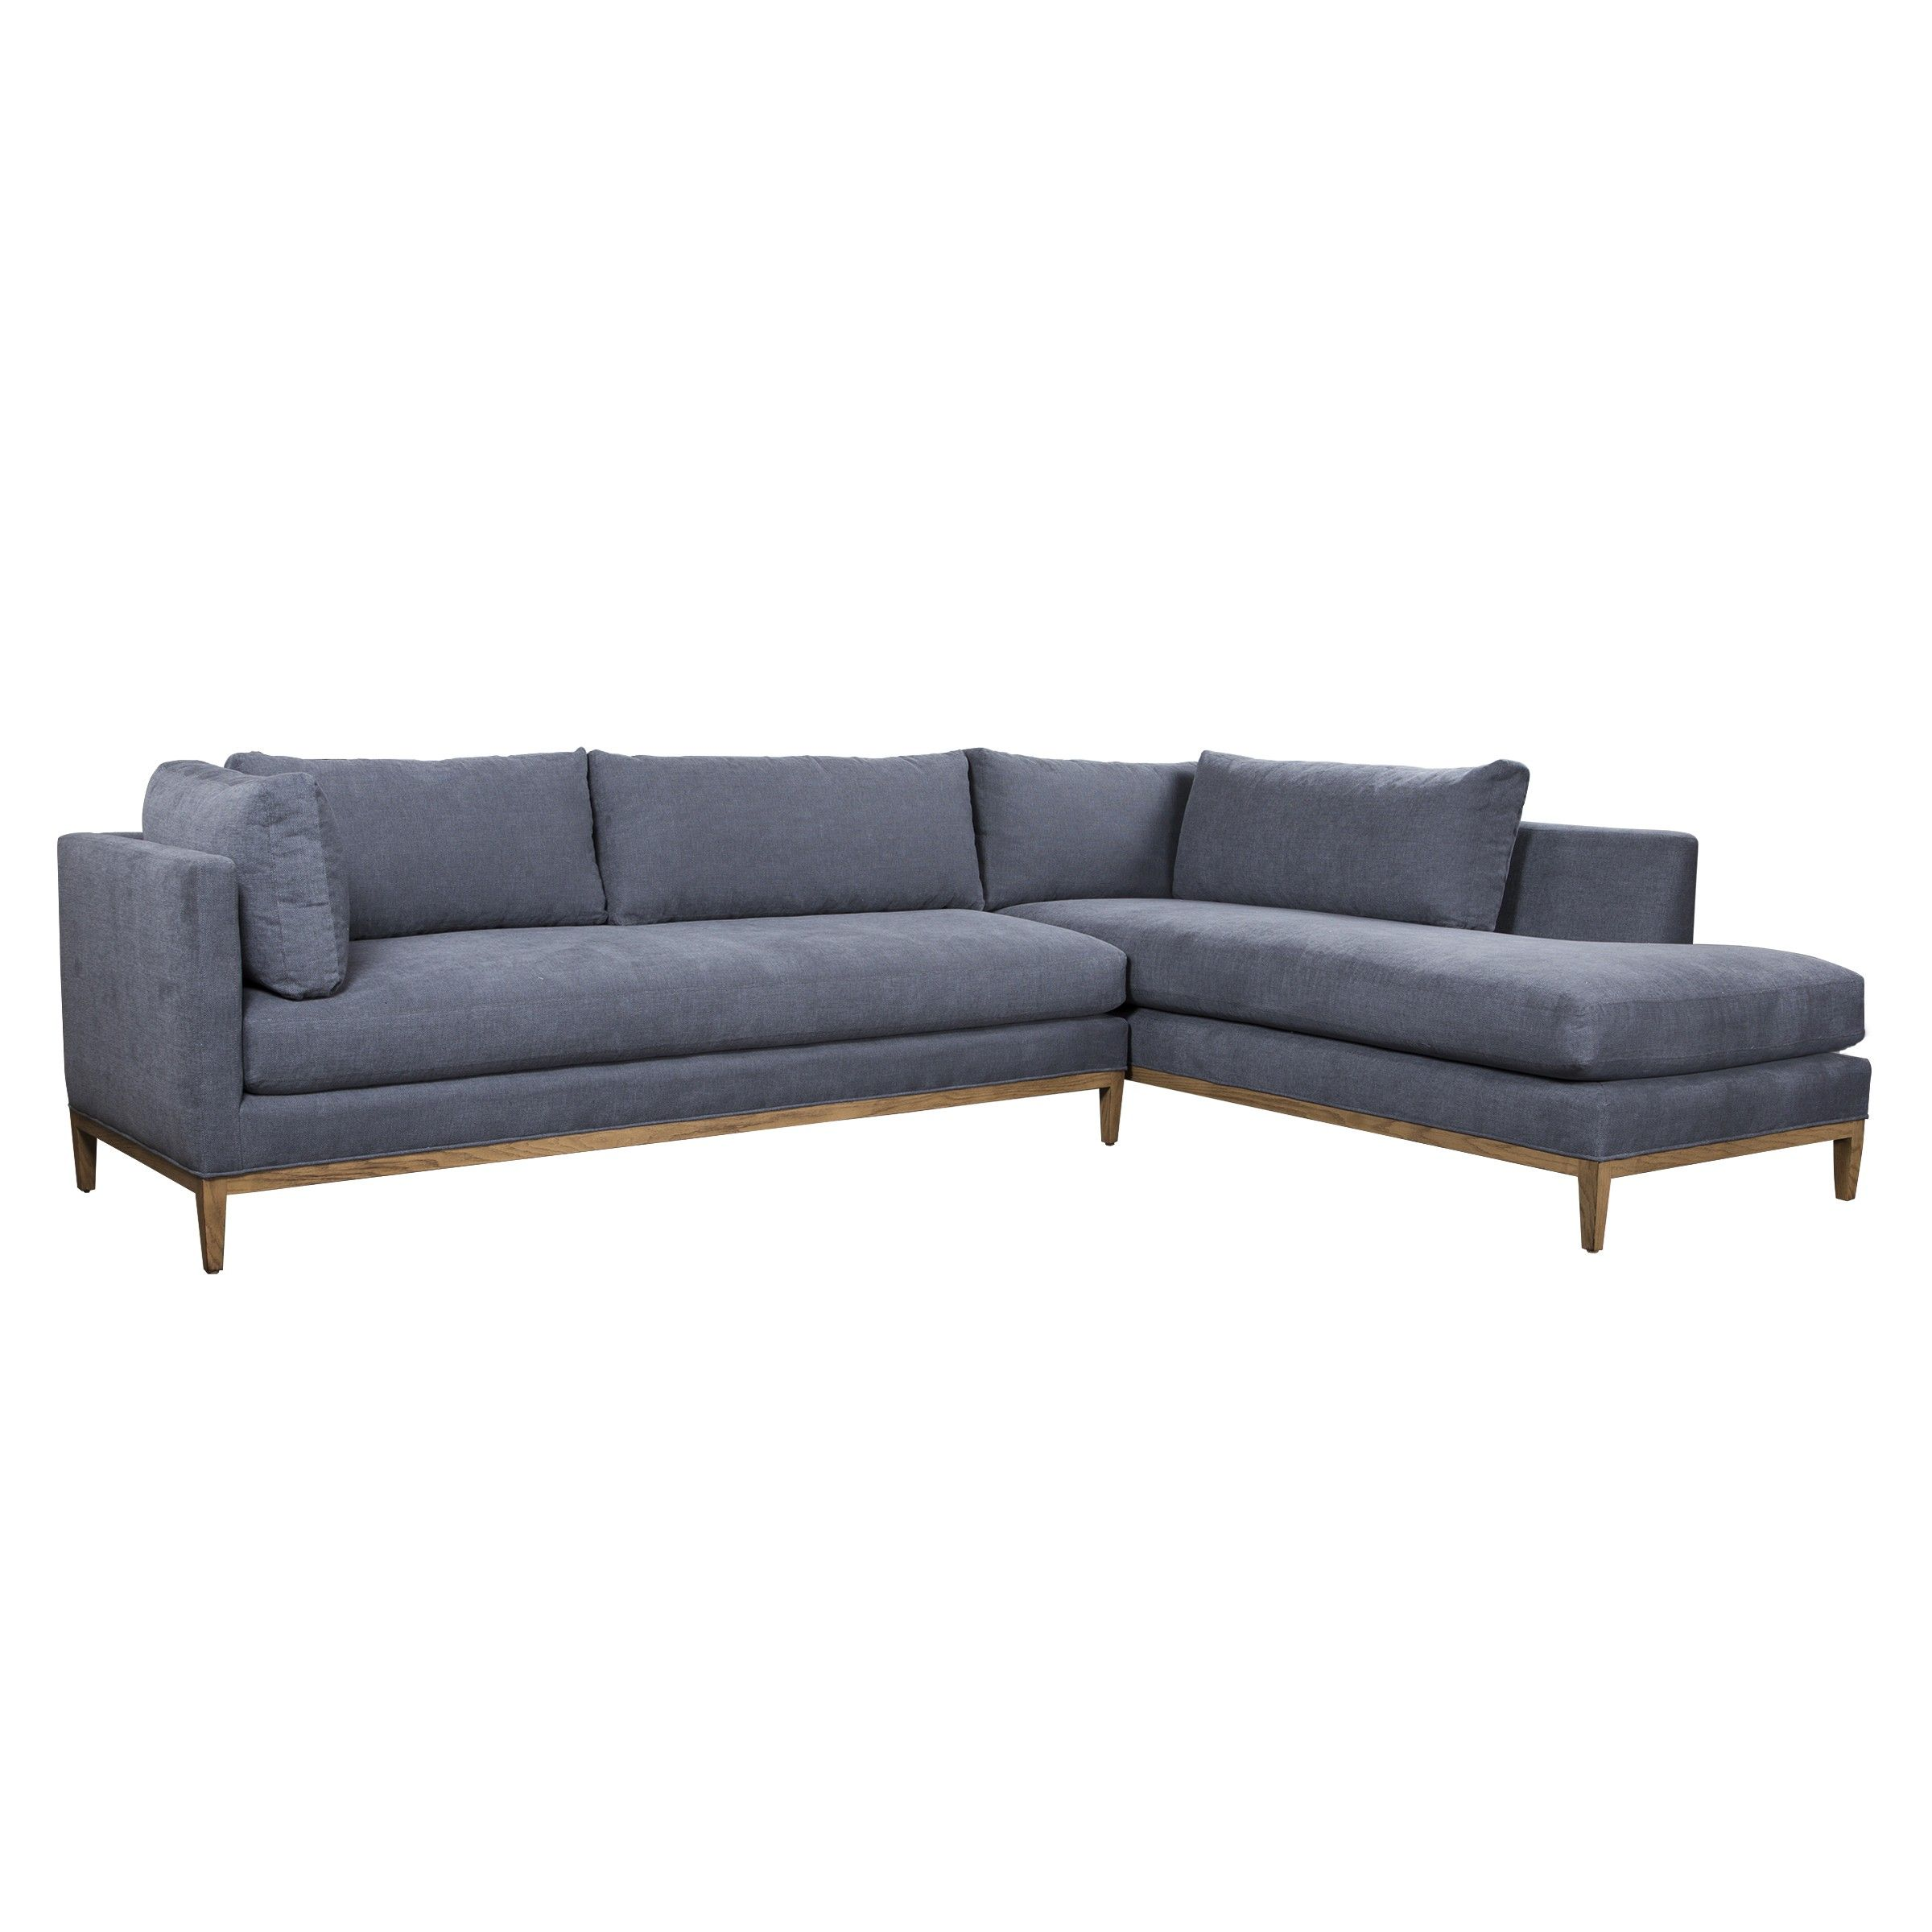 VALERIE SECTIONAL   Sectionals   Seating   Living   HD Buttercup Online U2013  No Ordinary Furniture